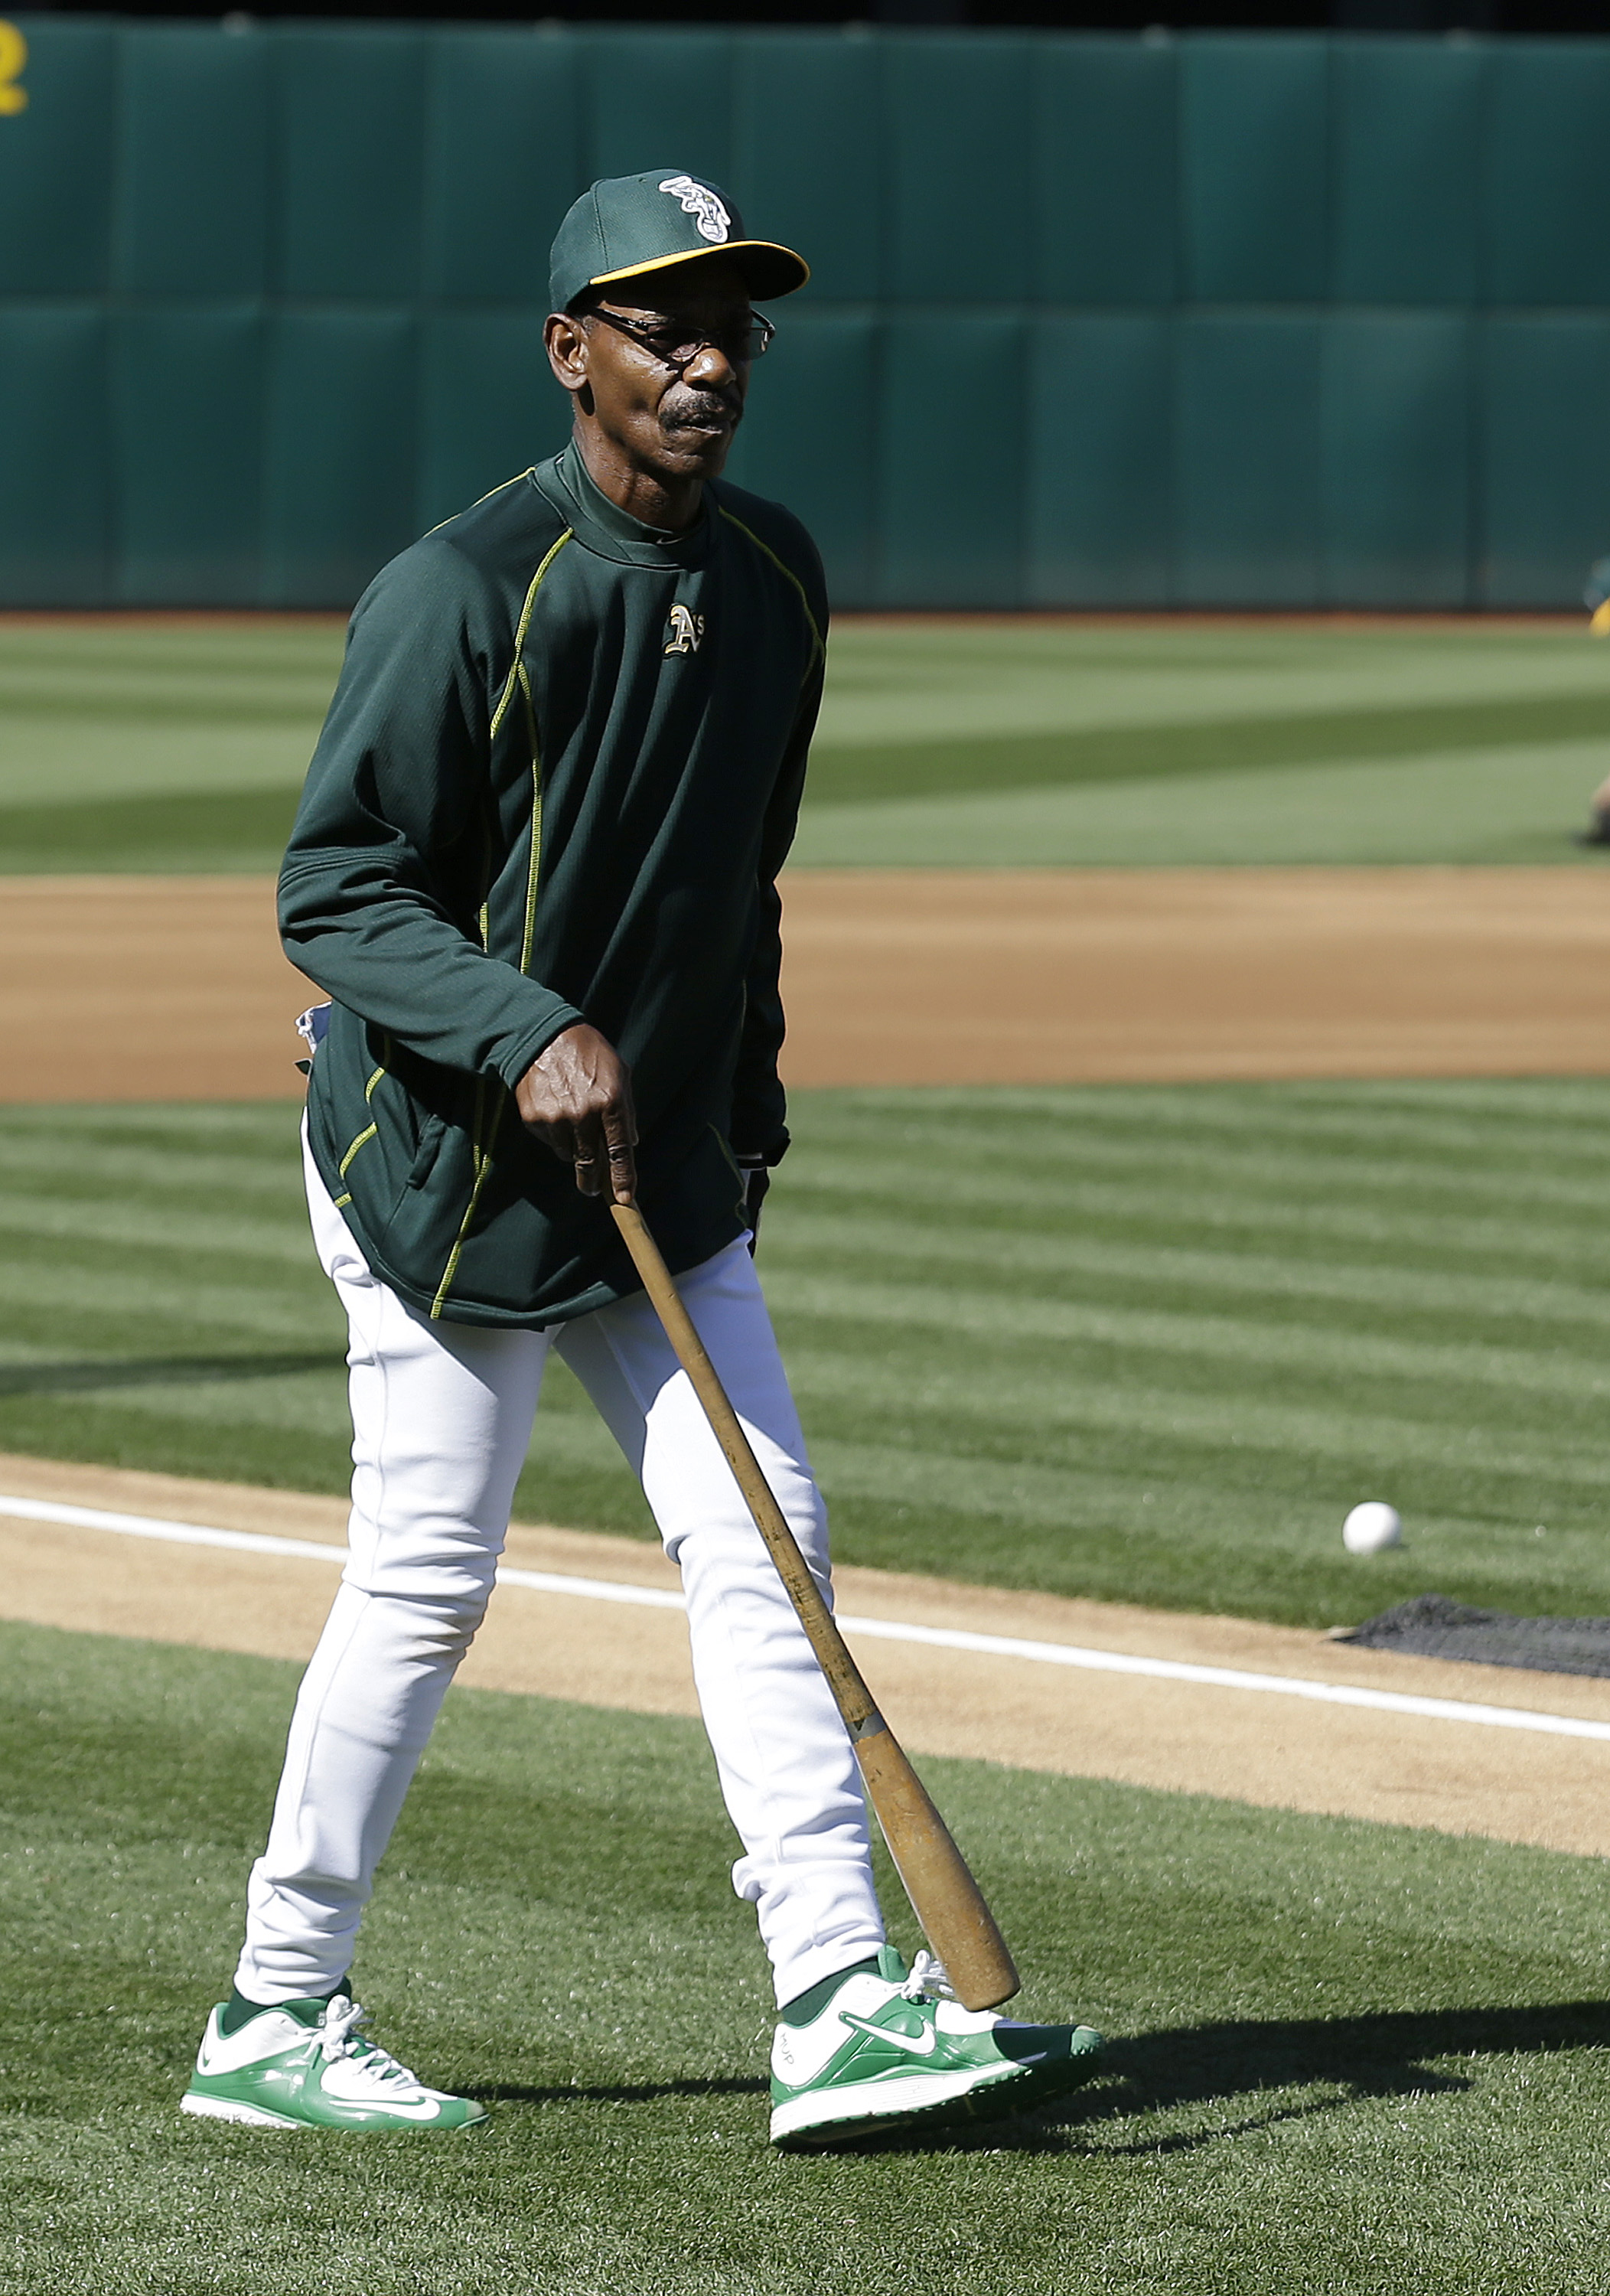 Oakland Athletics coach Ron Washington during drills before a baseball game against the Detroit Tigers in Oakland, Calif., Tuesday, May 26, 2015. (AP Photo/Jeff Chiu)